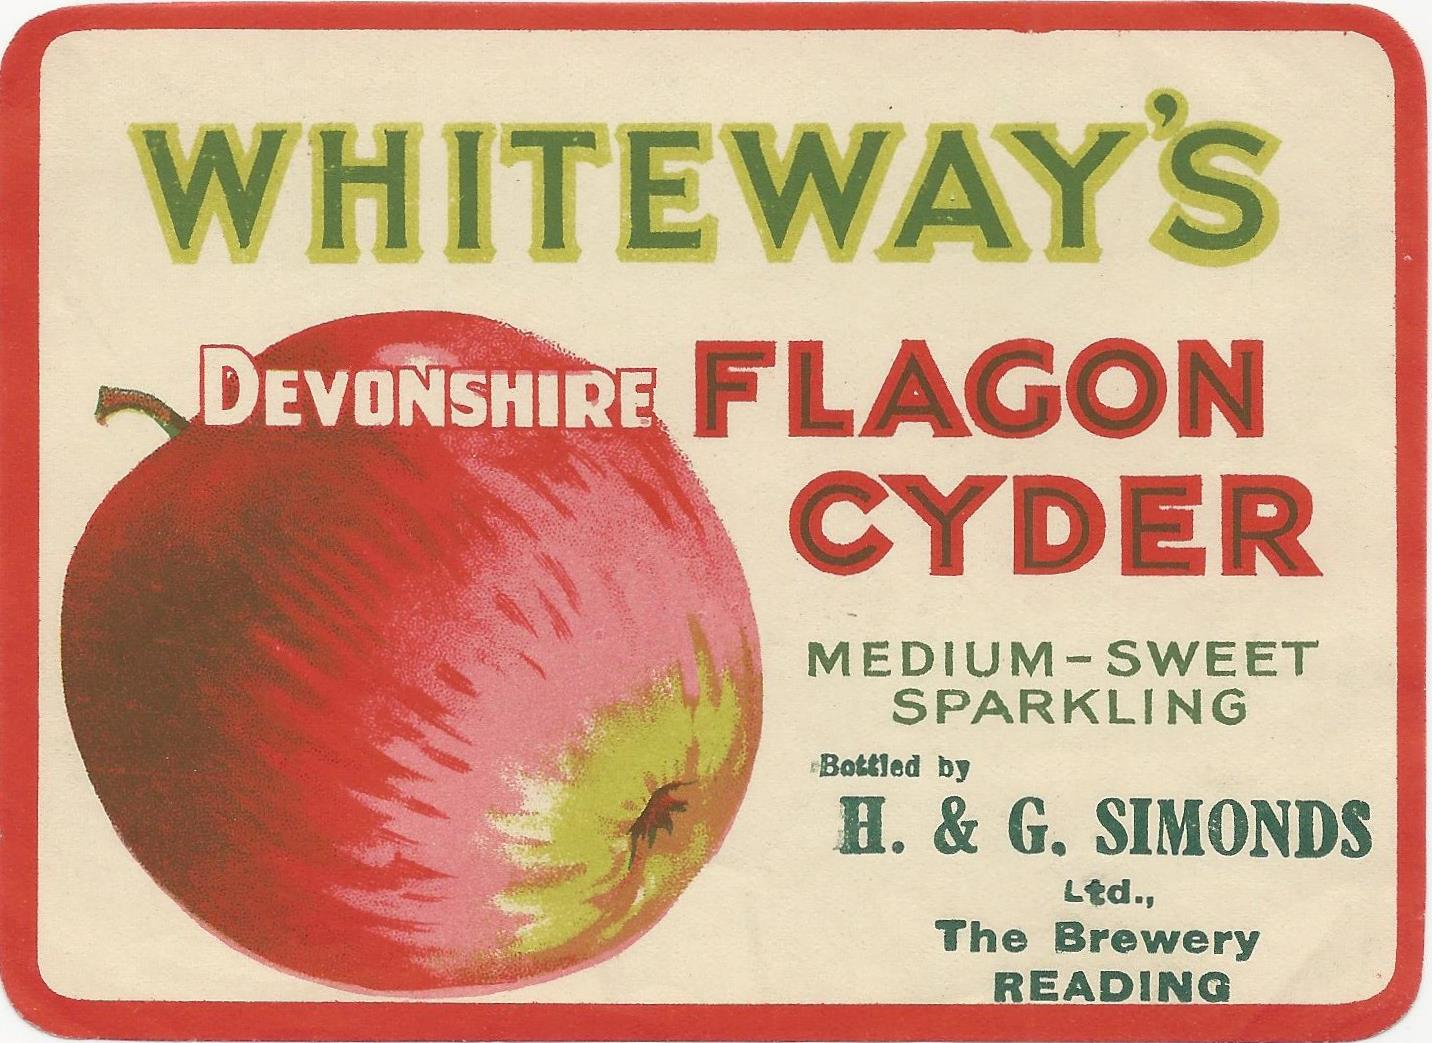 Cyder 3 Whiteways Flagon